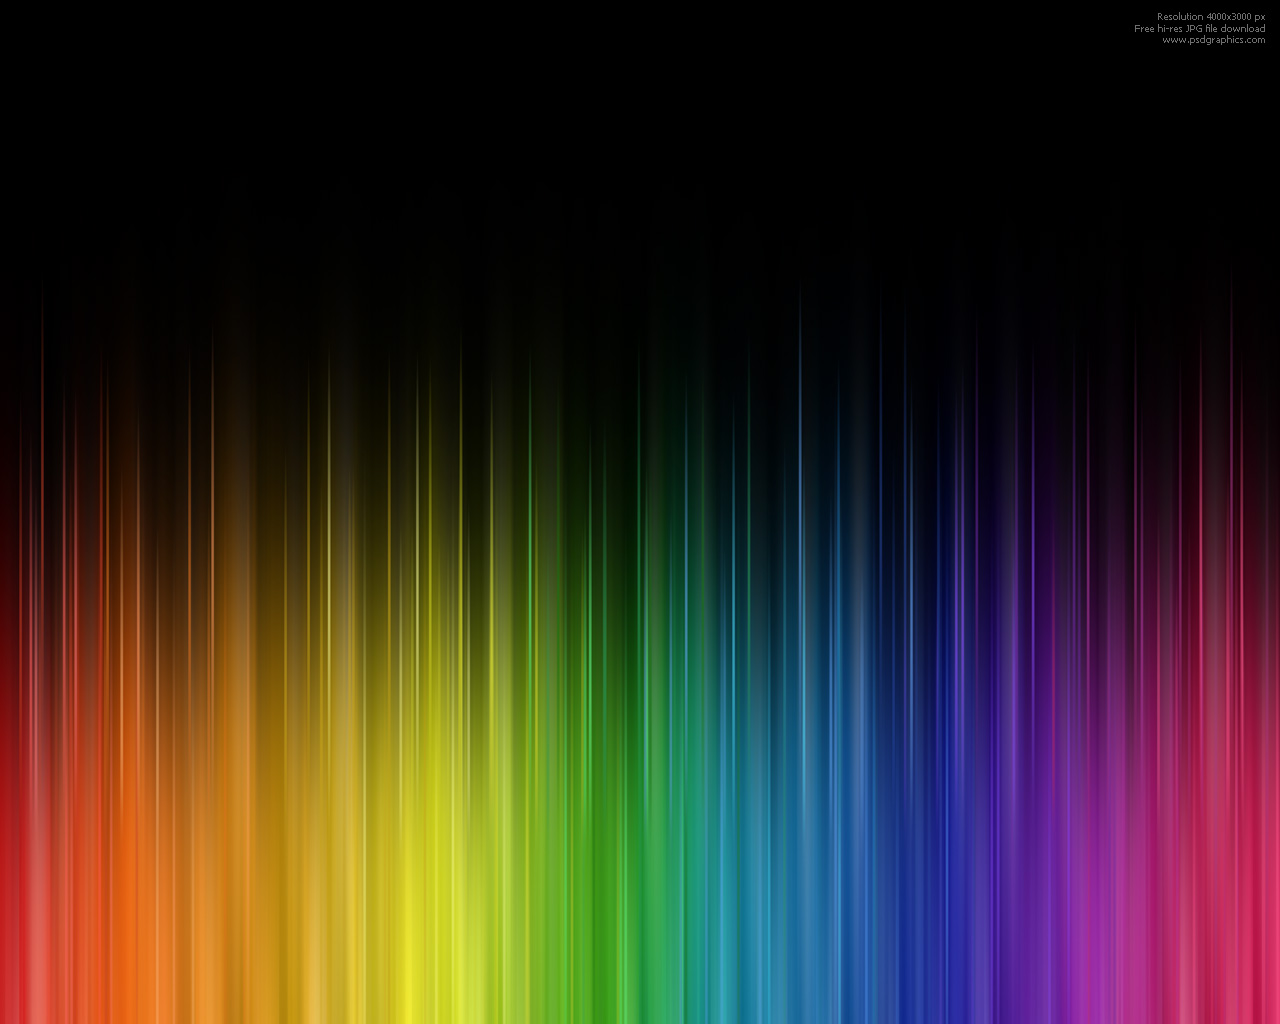 Free Colorful Green Colorful Abstract Wallpaper Downloads Wallpaper